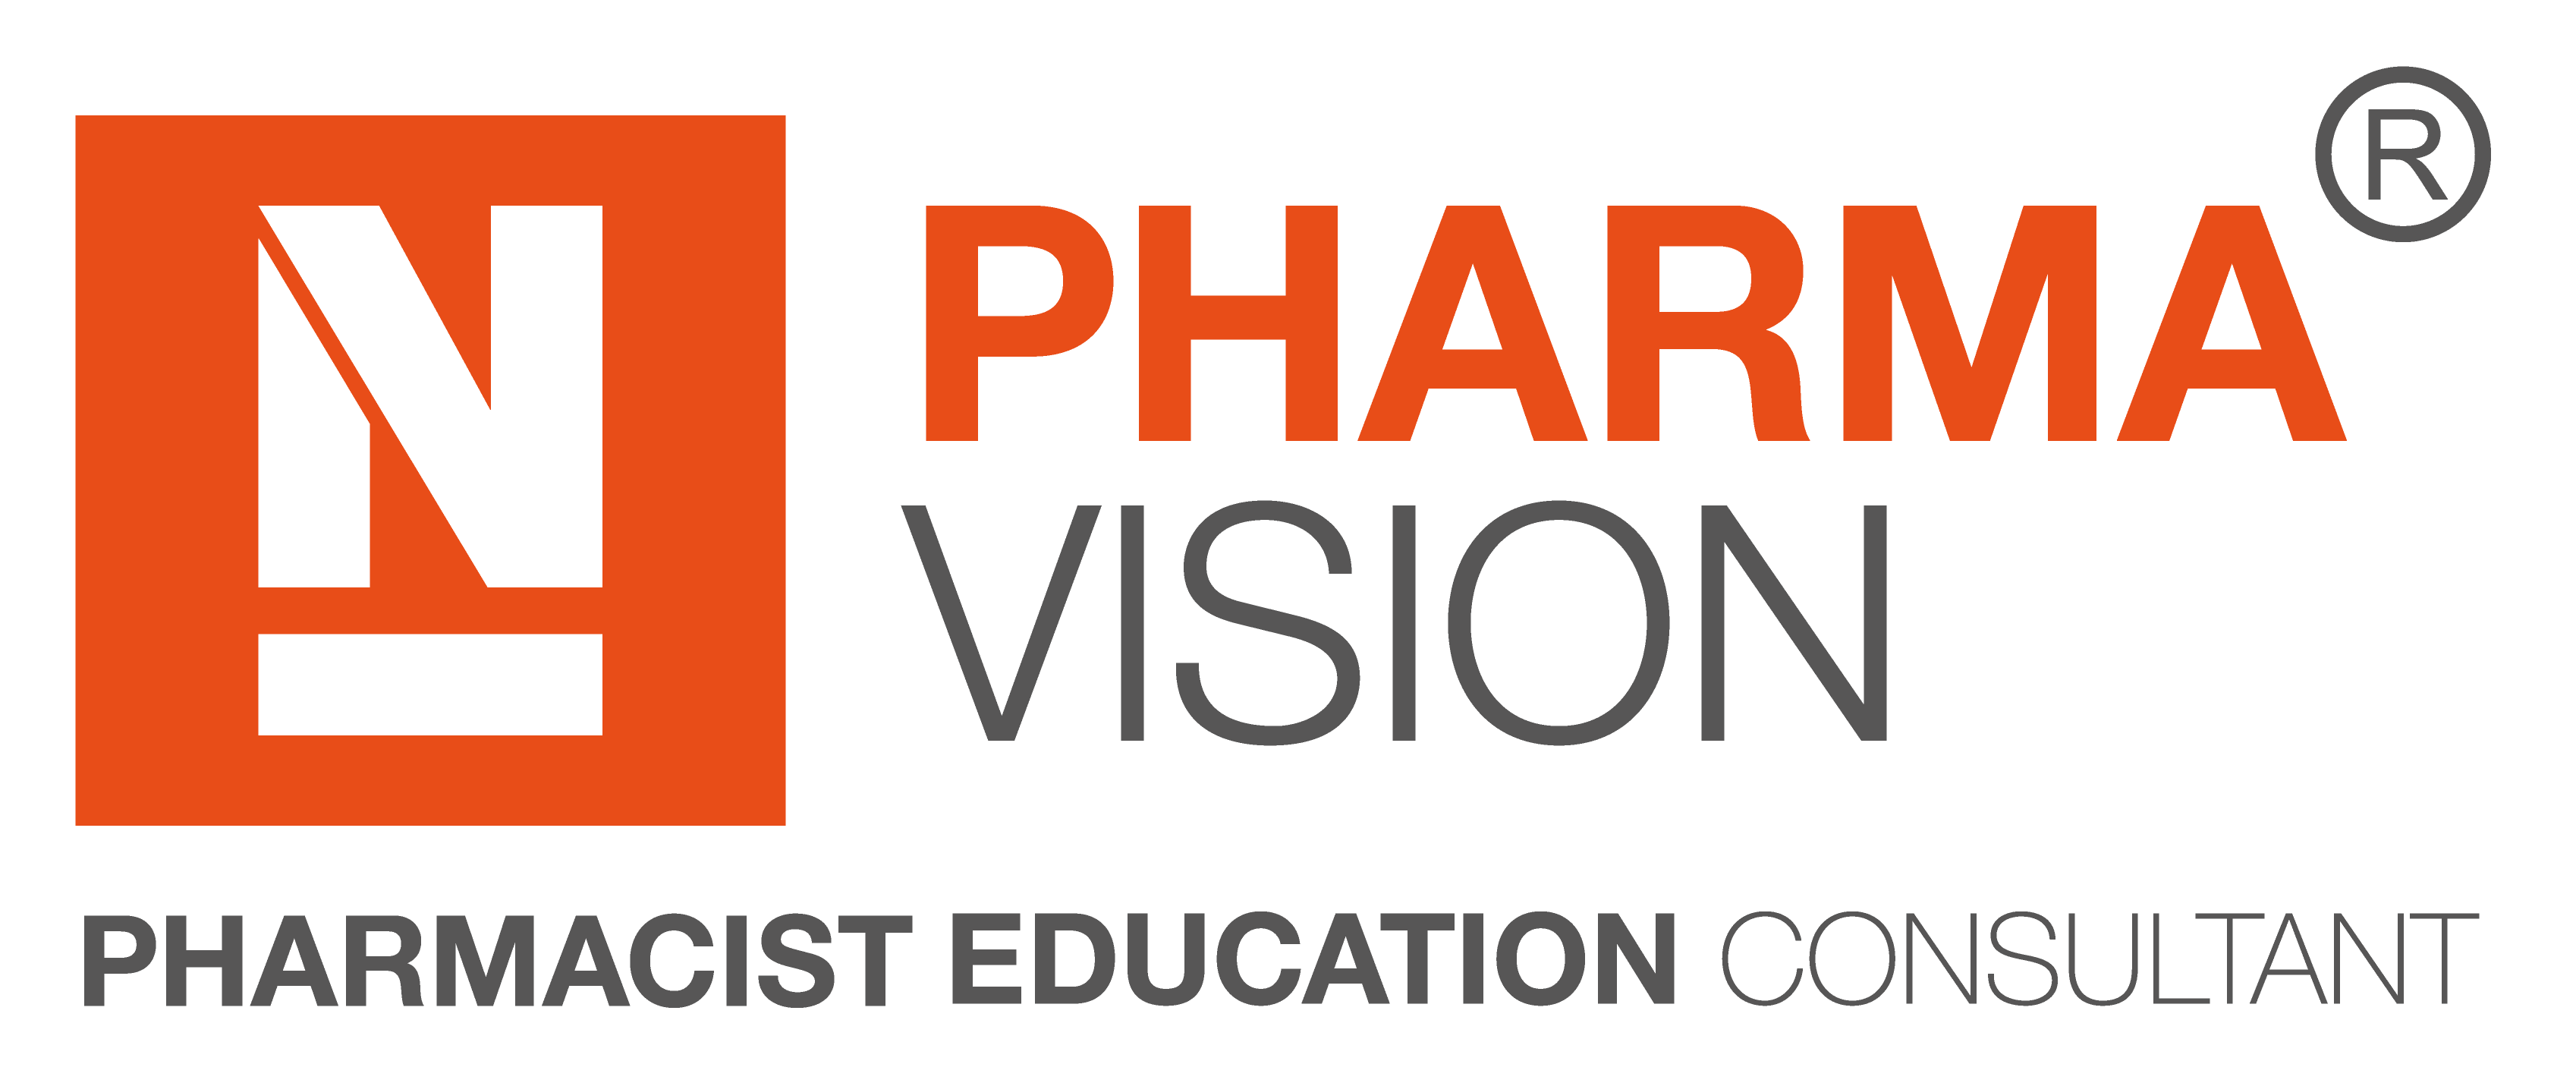 Pharmacist Education Consultant